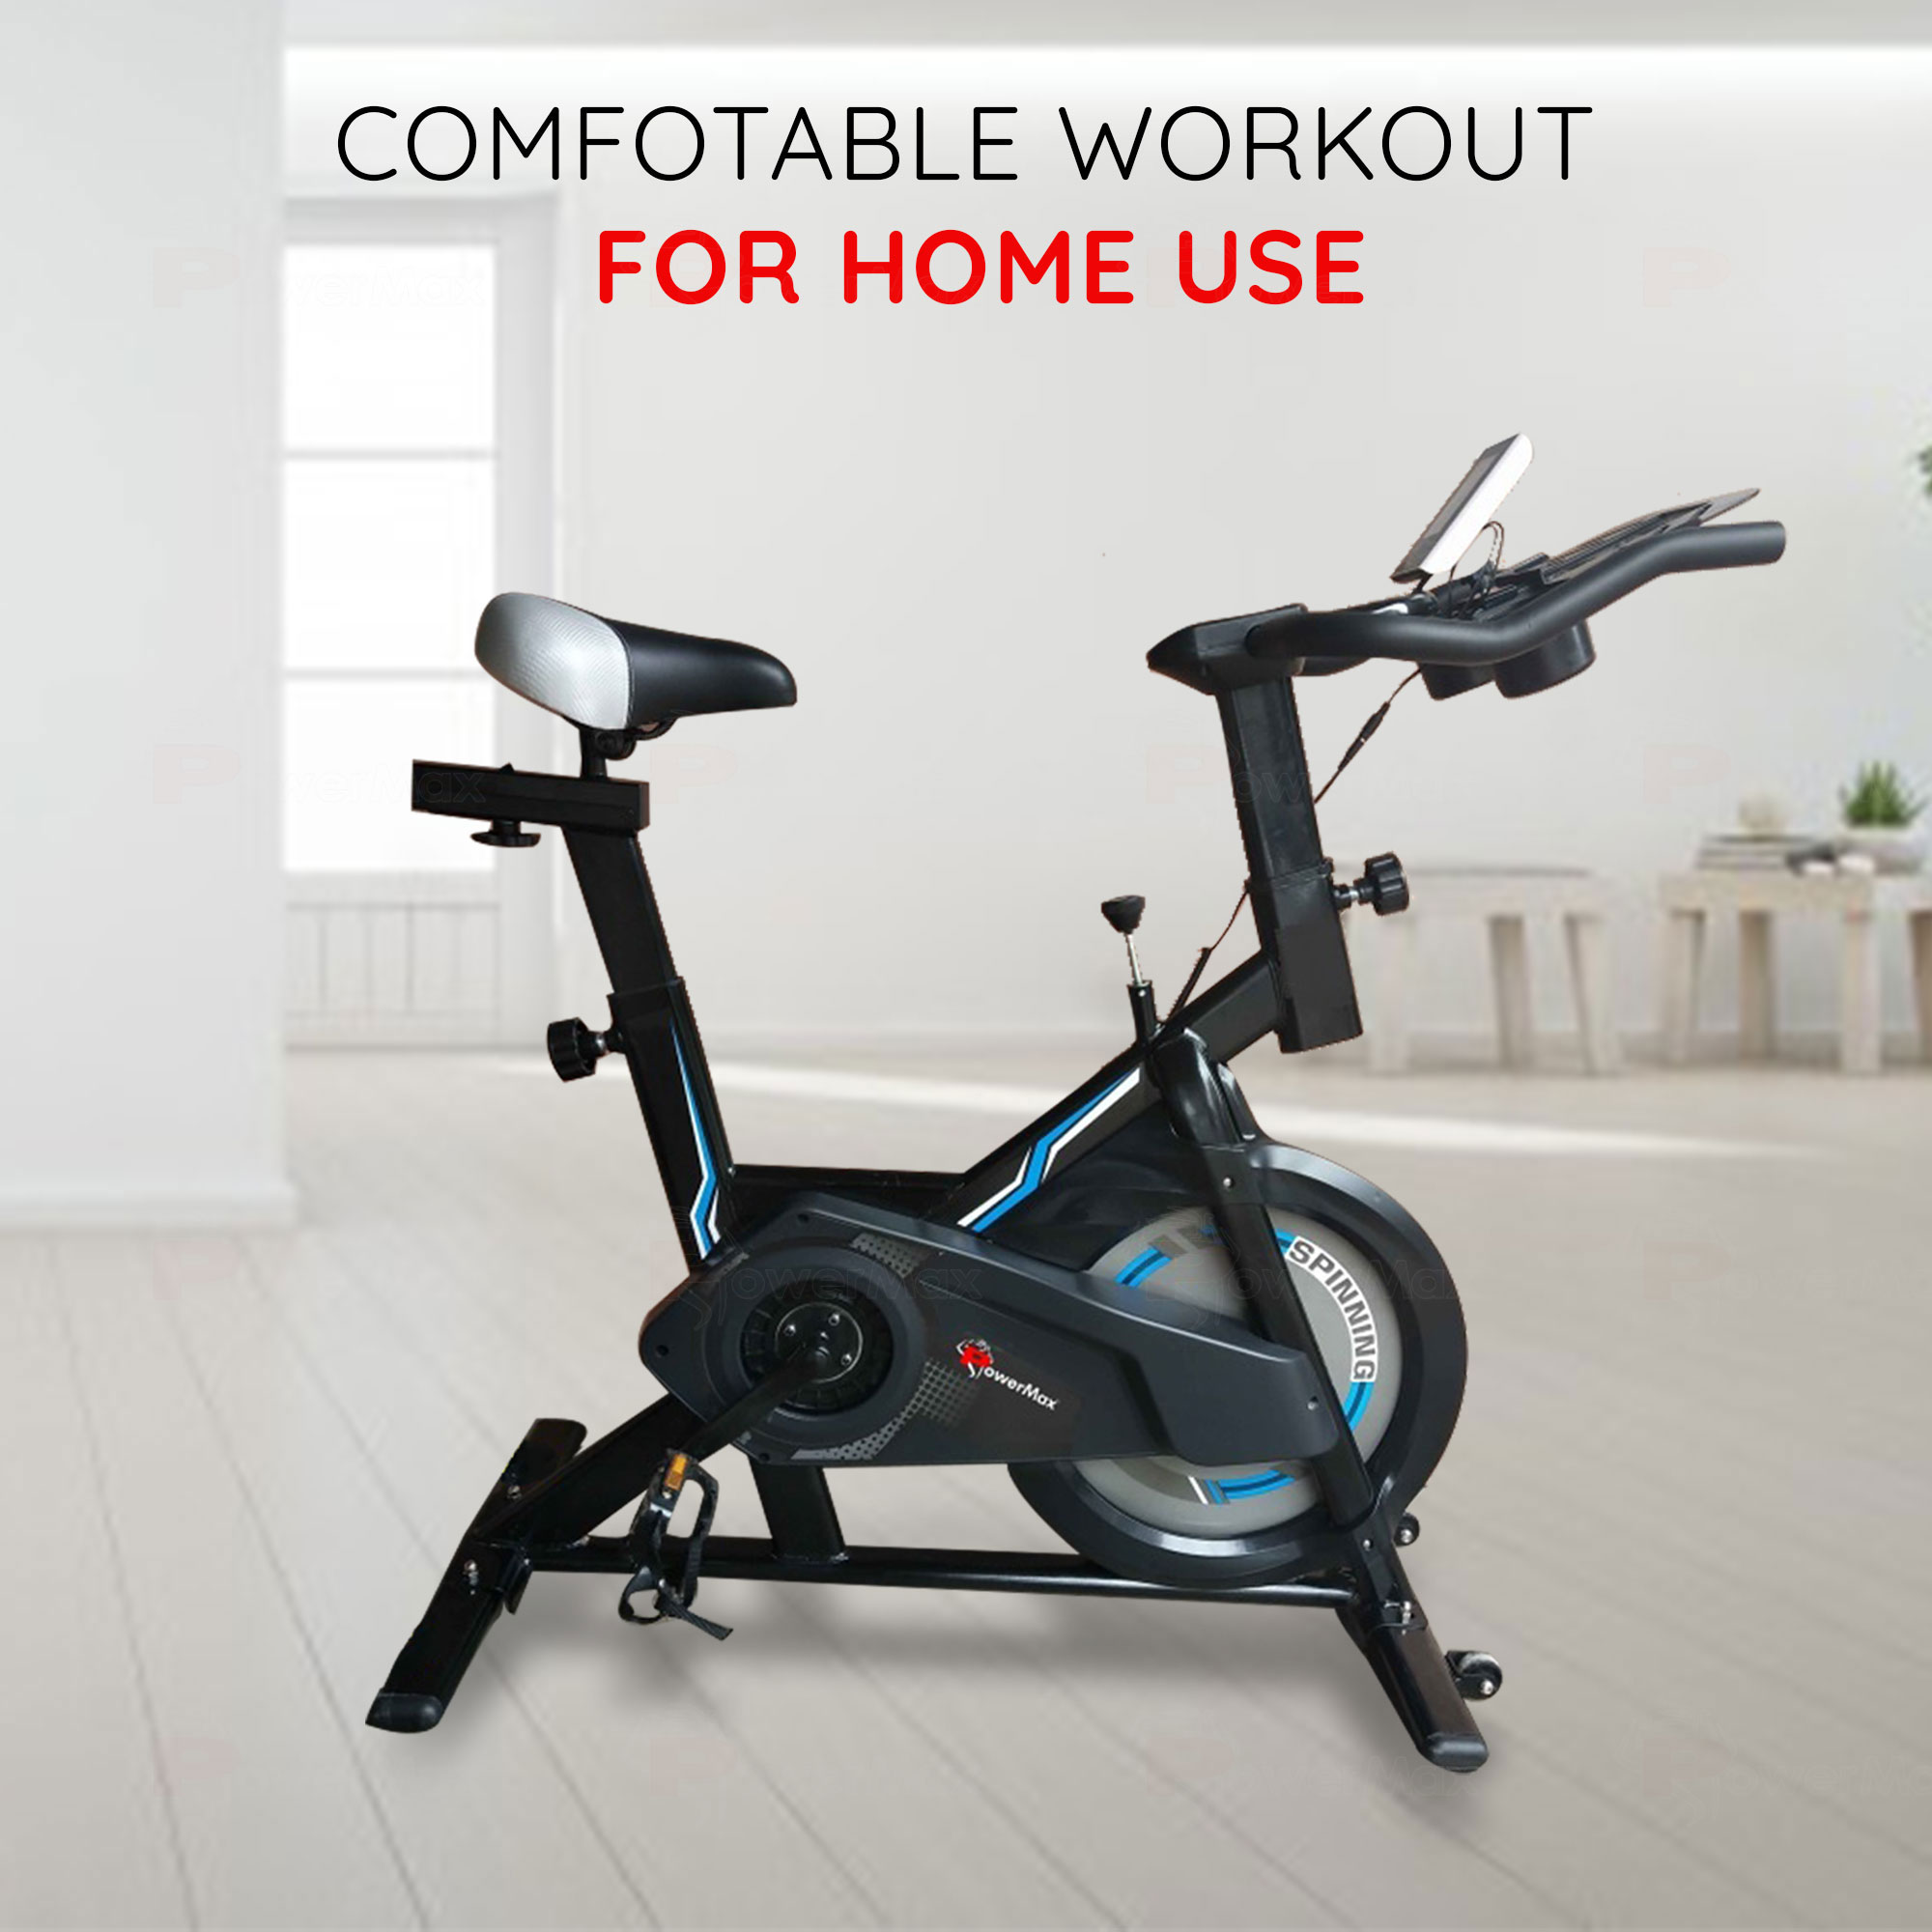 Home Use Spin Bike /Group Bike with iPad & Bottle holder